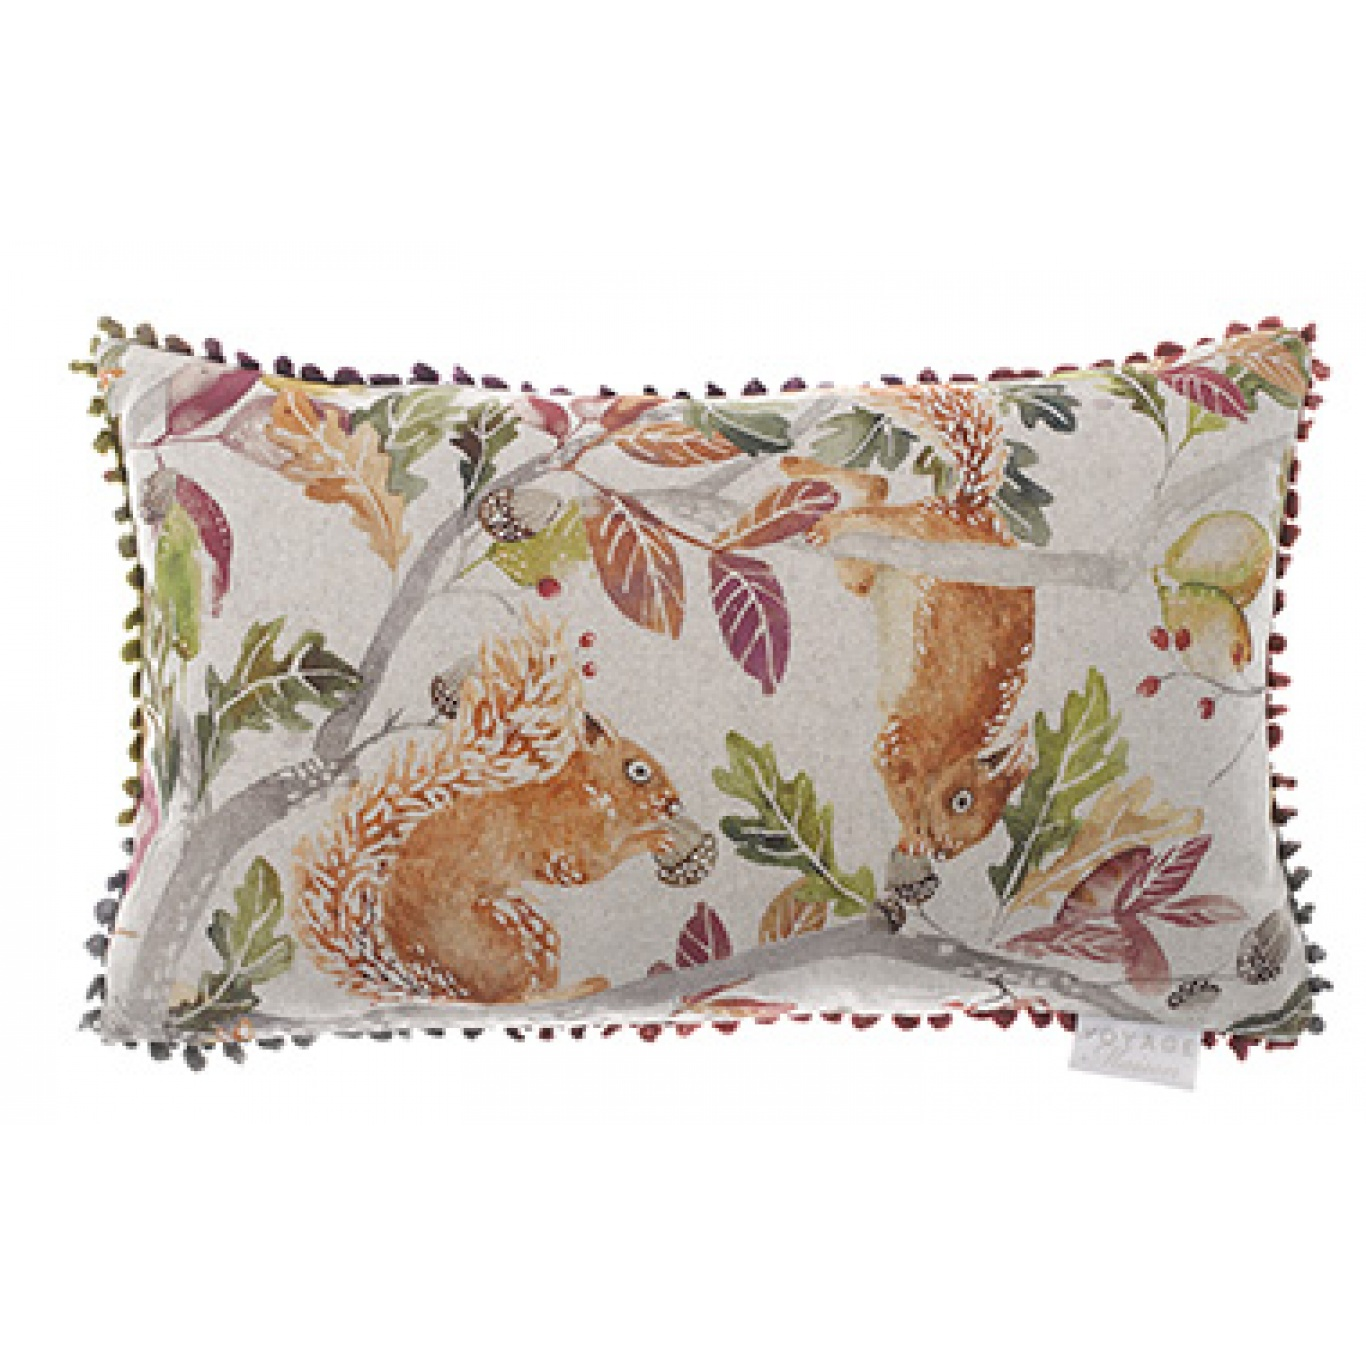 Image of Voyage Scurry of Squirrels Linen Cushion